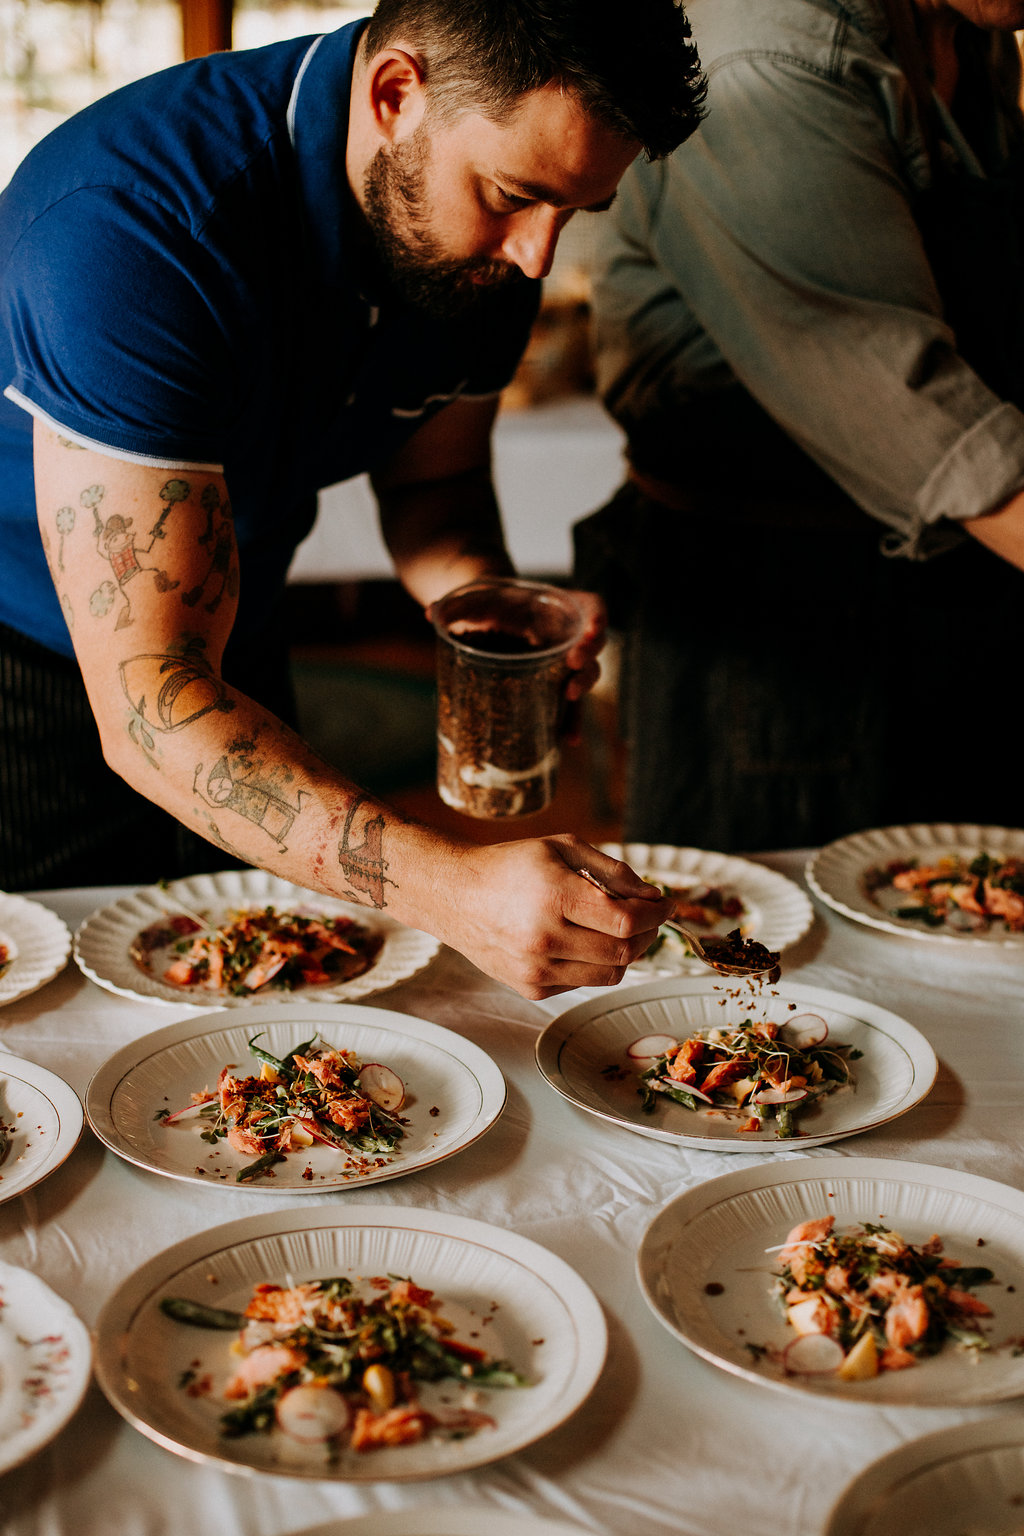 A chef puts the finishing touches on a plated meal for a long table dinner in Calgary